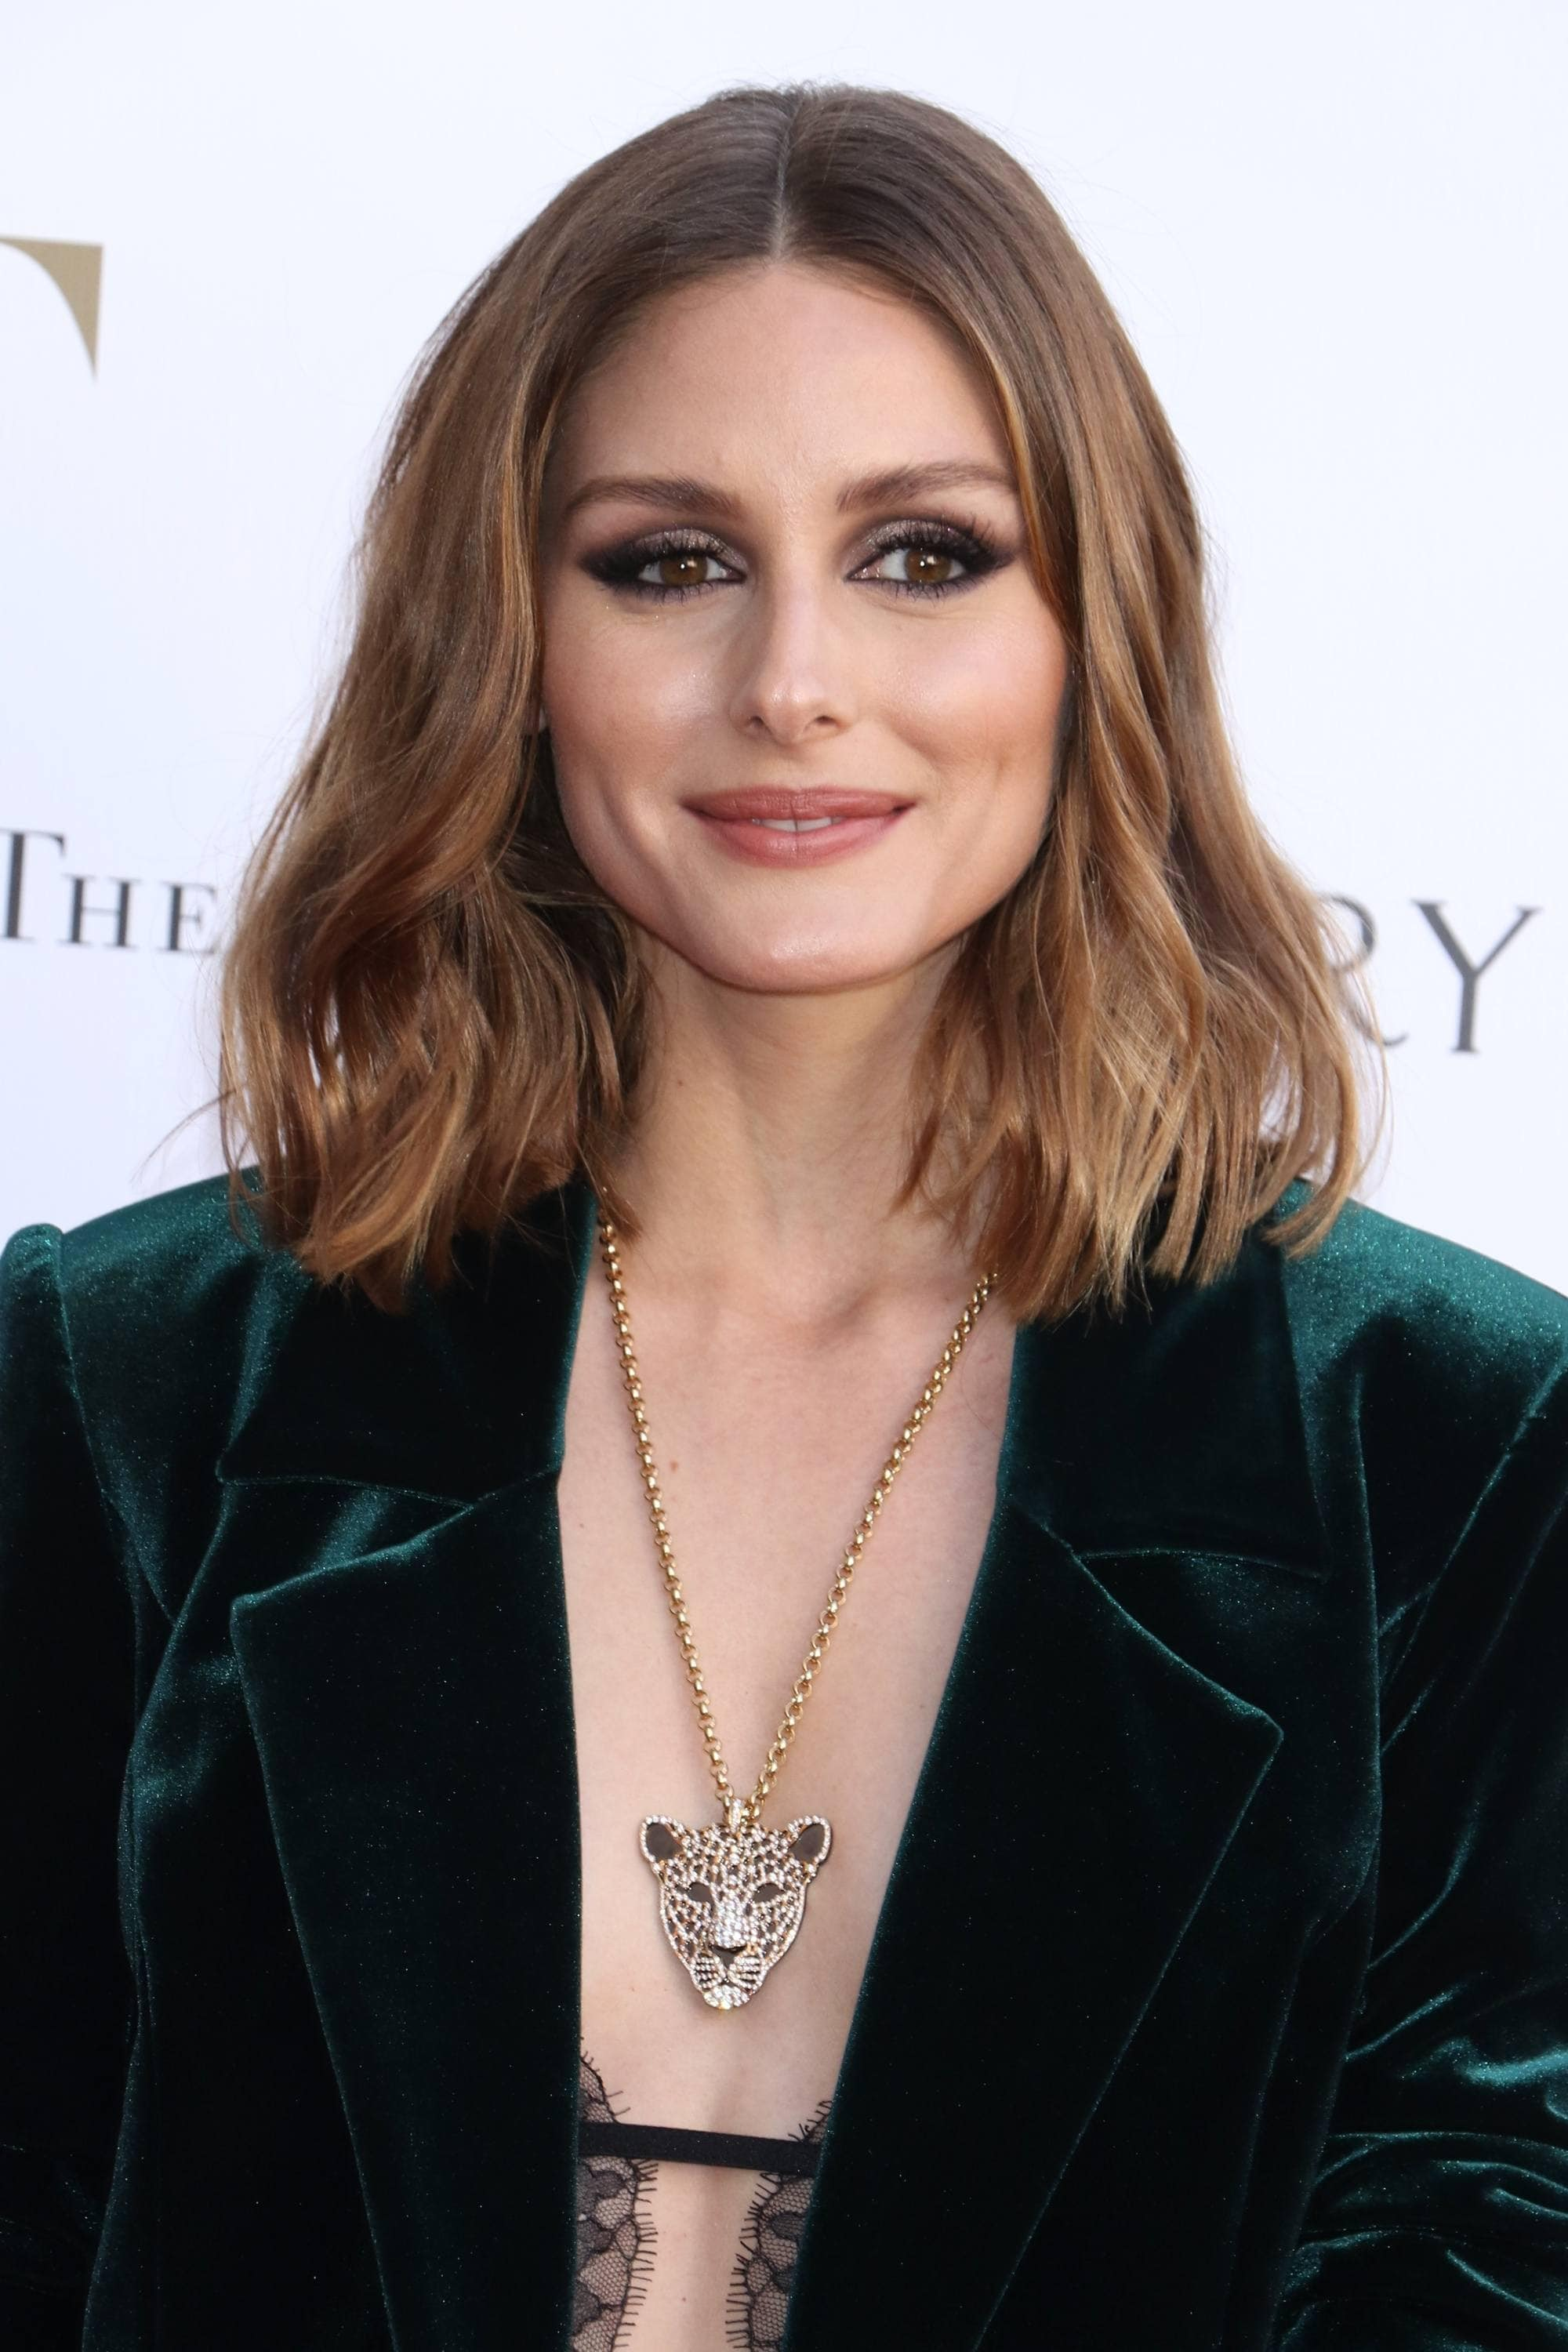 Medium hairstyles for thick hair: Olivia Palermo with mid-length light brown wavy hair, wearing a green velvet blazer